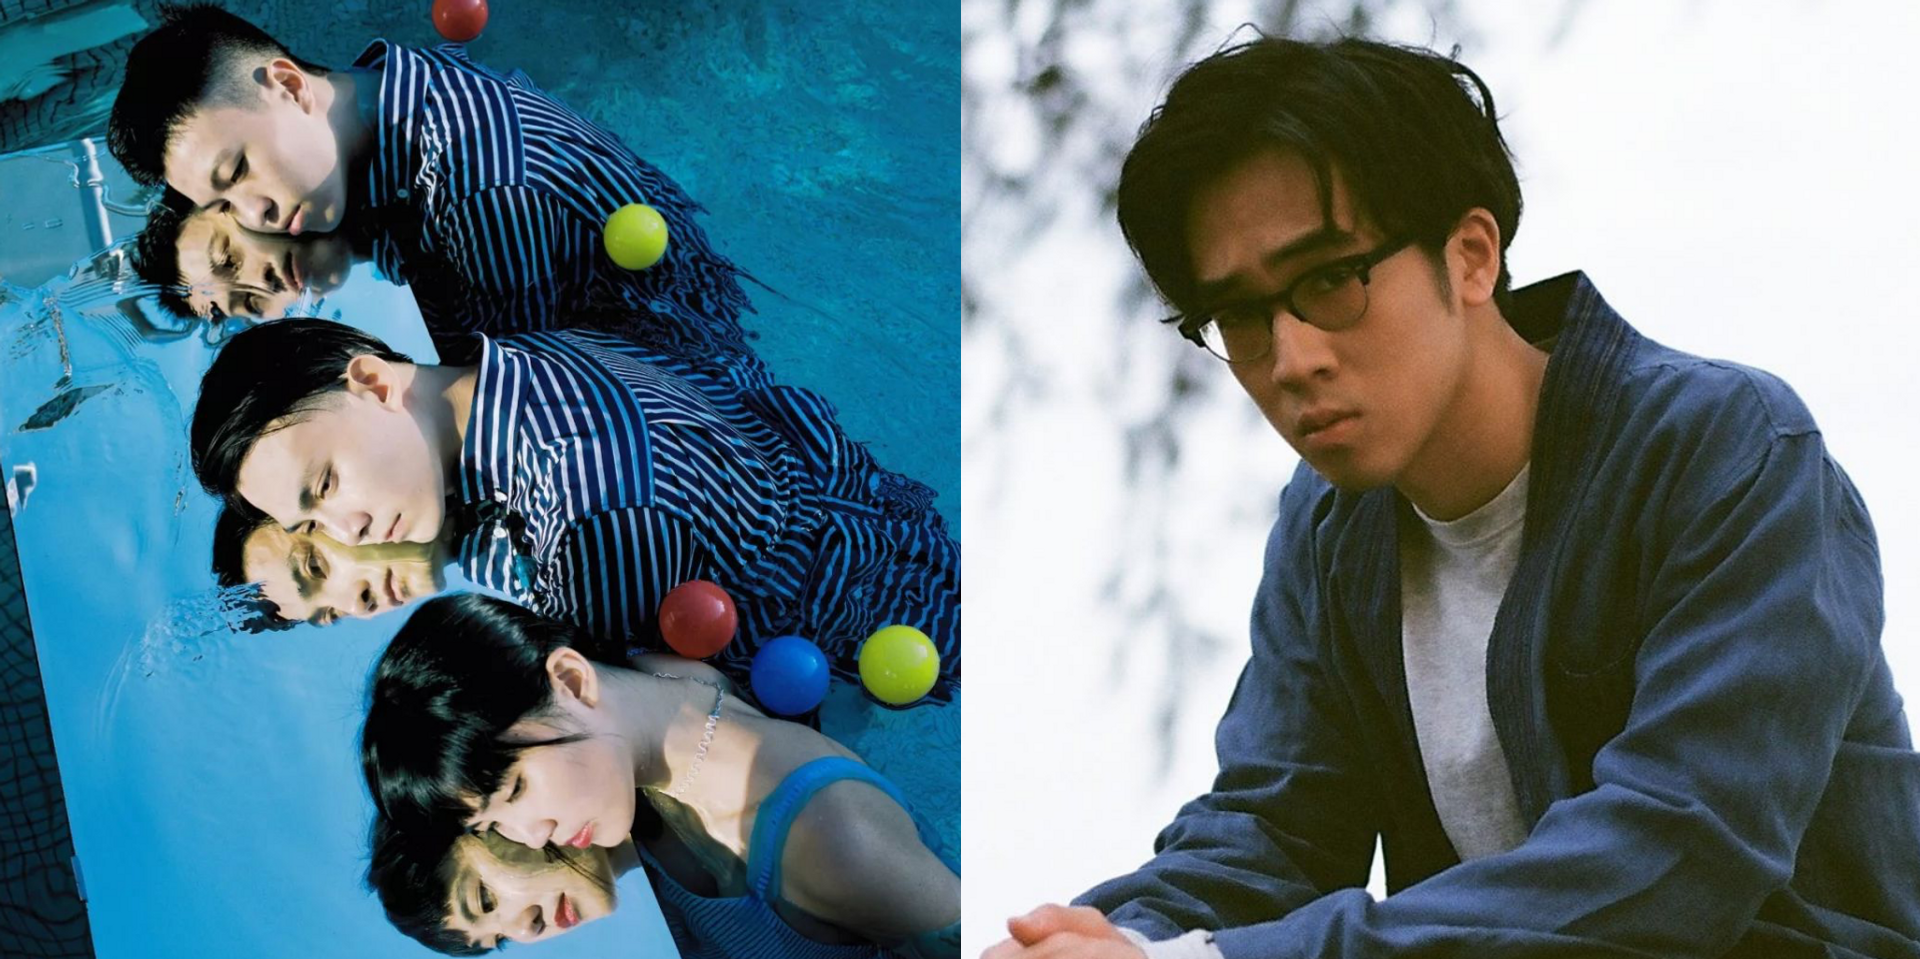 Elephant Gym shares new EP, collaborates with Charlie Lim